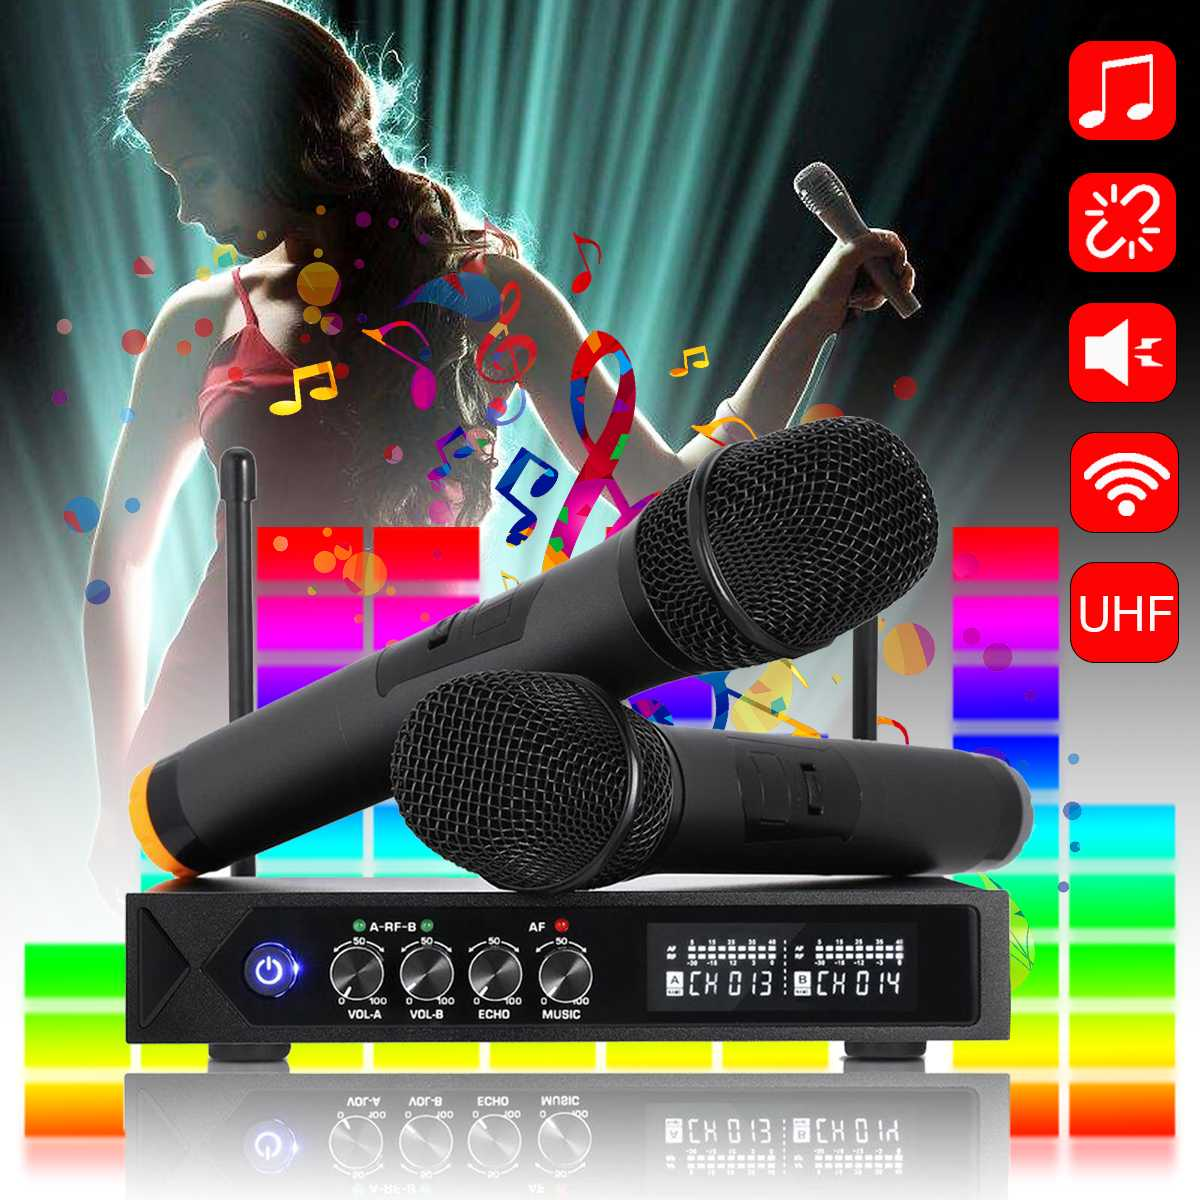 Reverberation Tuning Dual UHF bluetooth Wireless Microphone System Receiver Cordless Handheld Mic KTV Machine SpeakersReverberation Tuning Dual UHF bluetooth Wireless Microphone System Receiver Cordless Handheld Mic KTV Machine Speakers